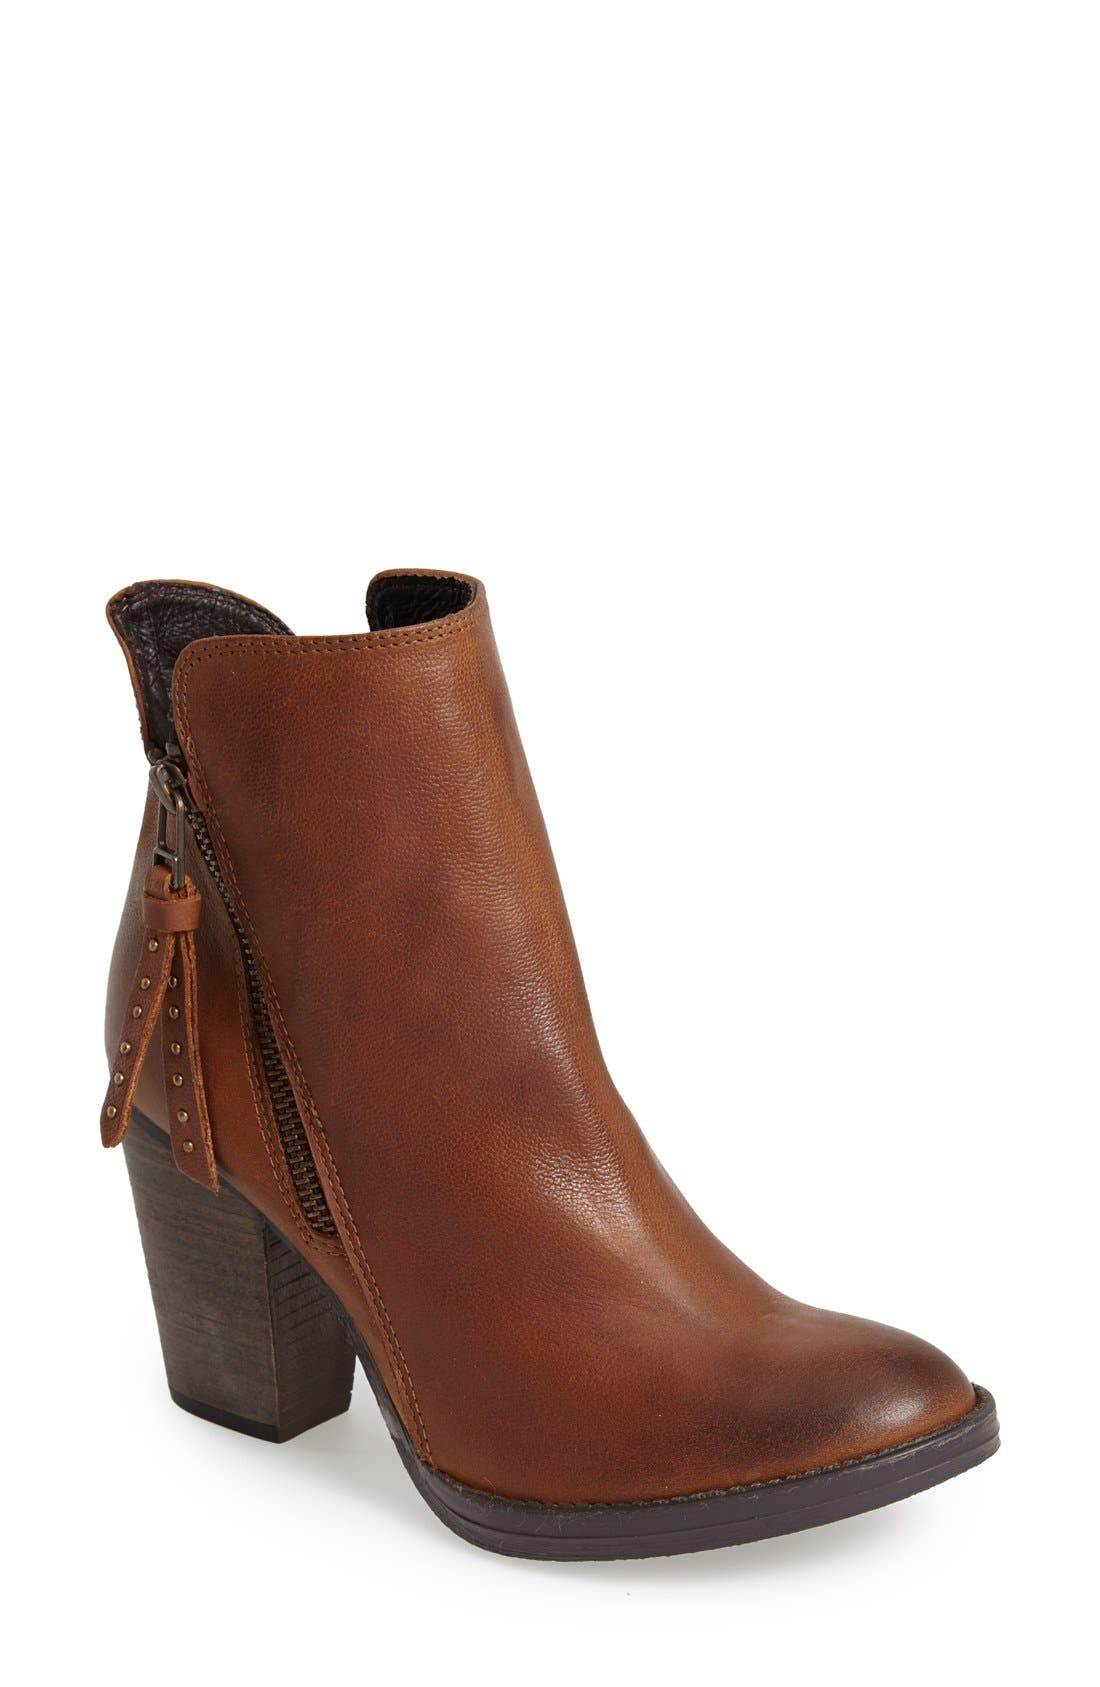 'Ryat' Leather Ankle Bootie,                         Main,                         color, Cognac Leather